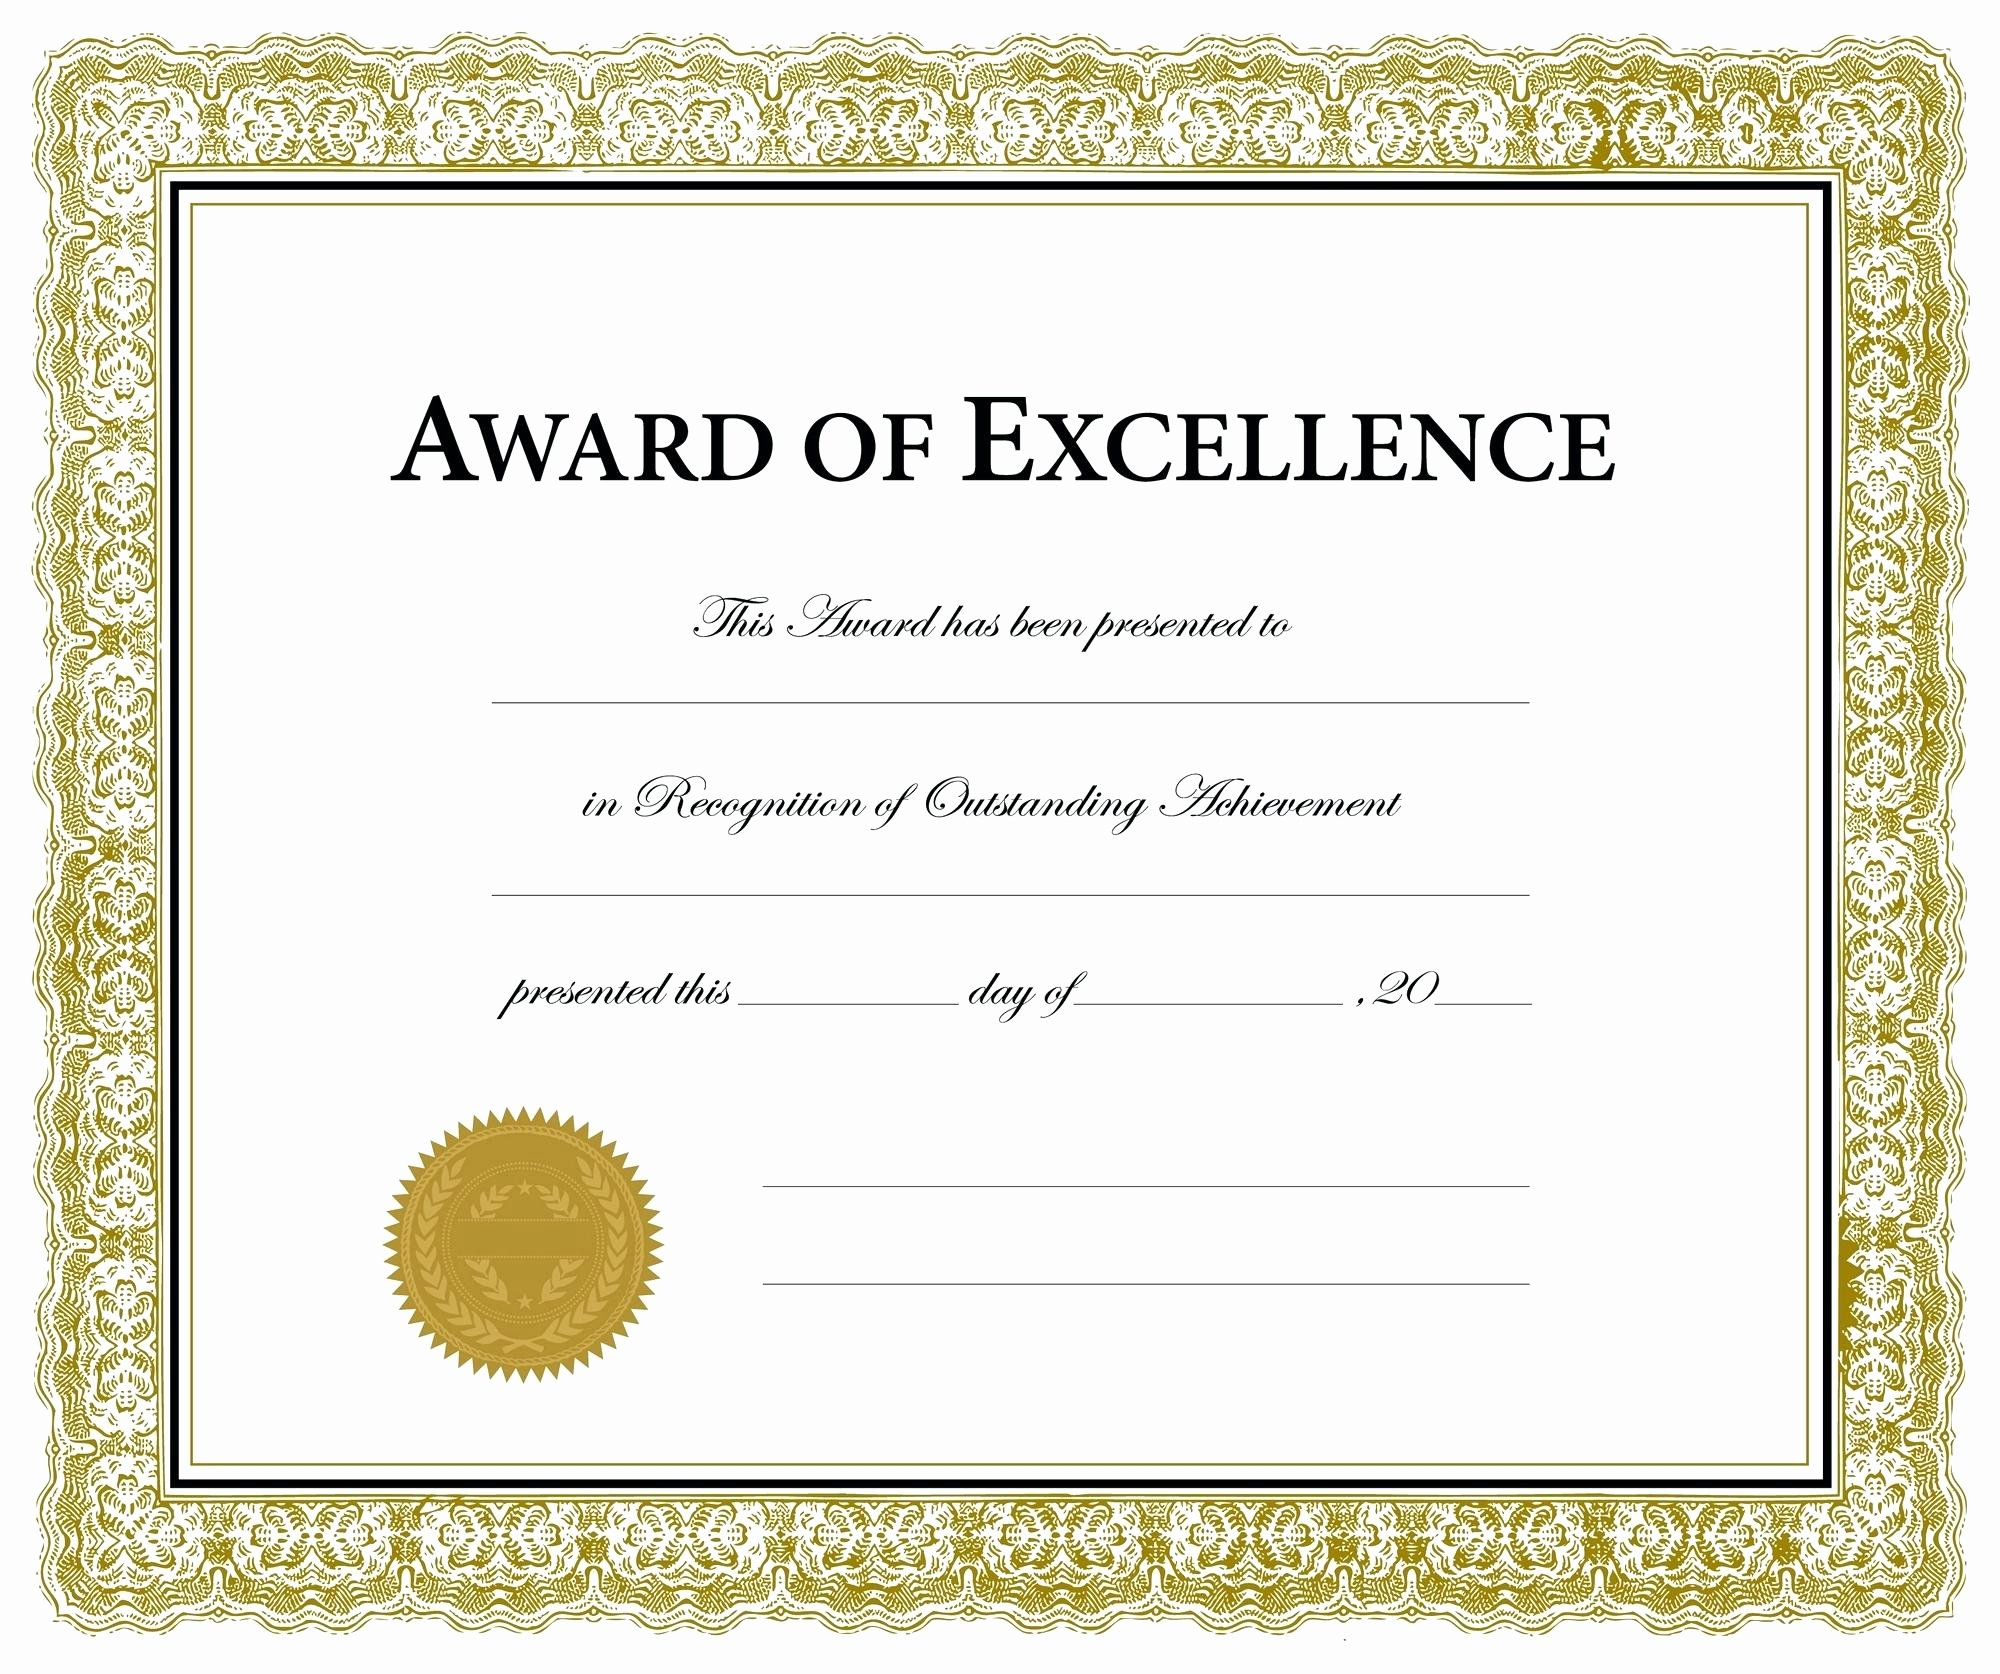 Customer Service Award Template Inspirational Template Award Excellence Template